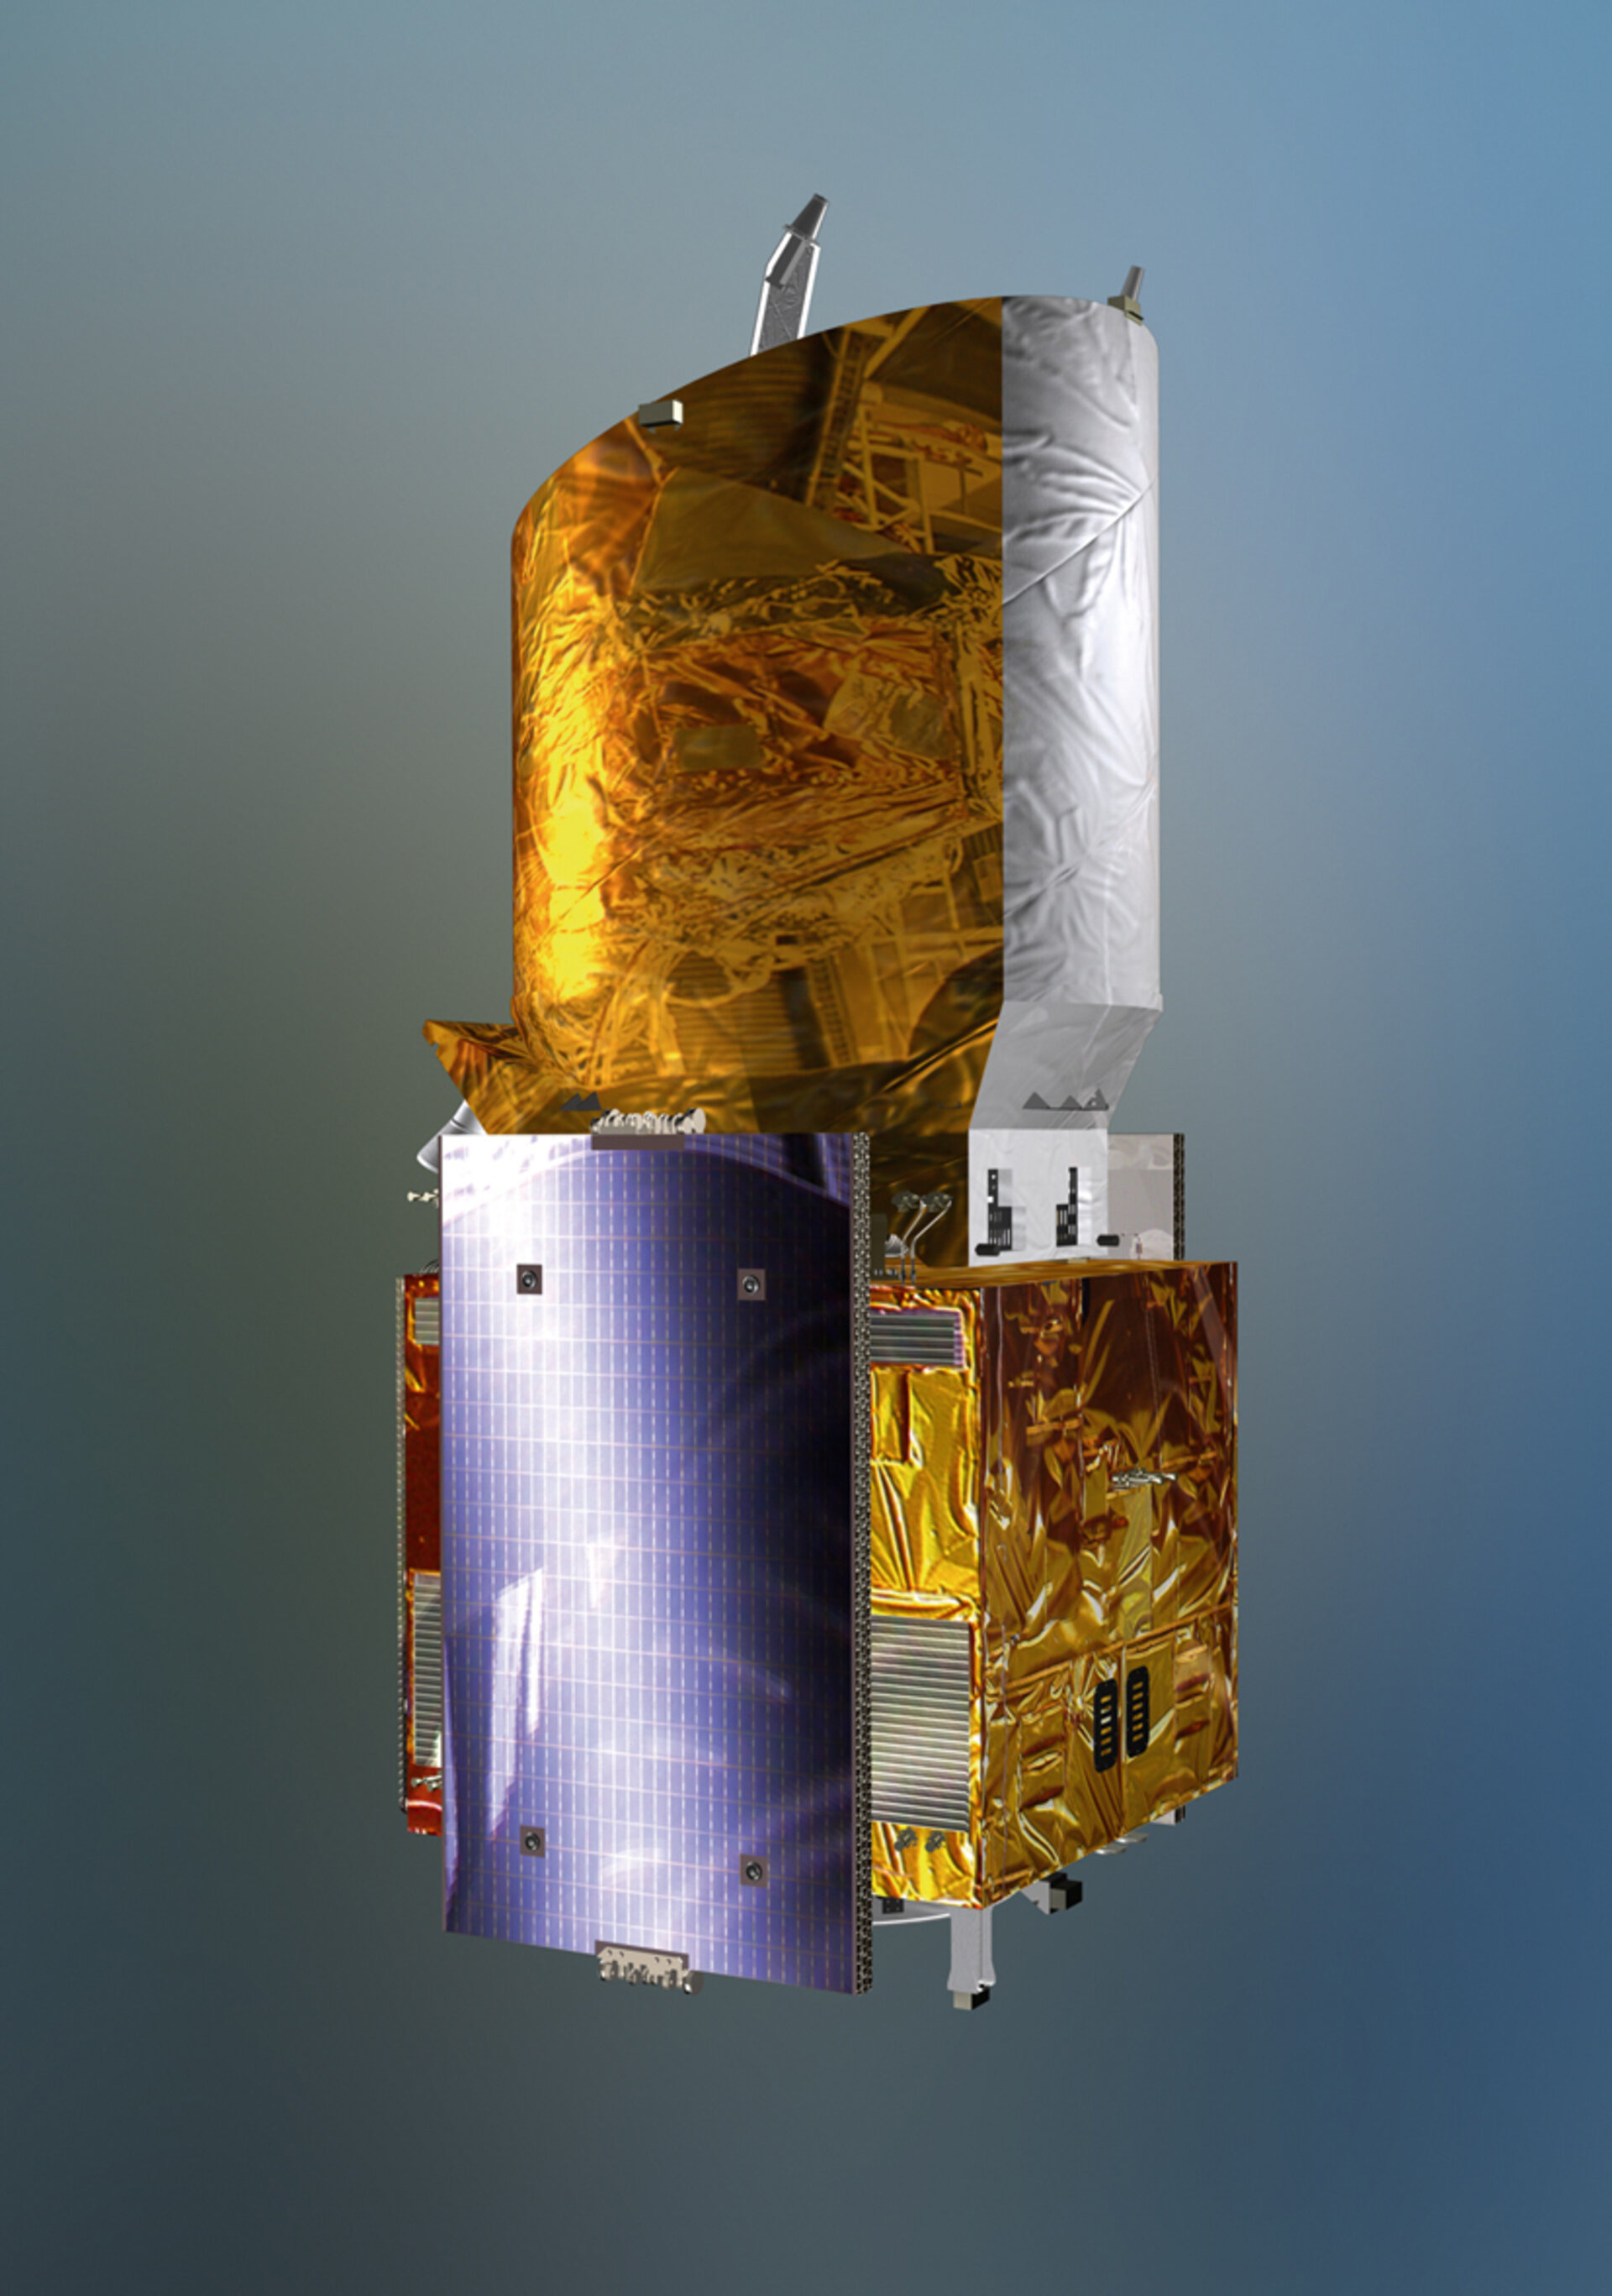 The Aeolus satellite in launch configuration